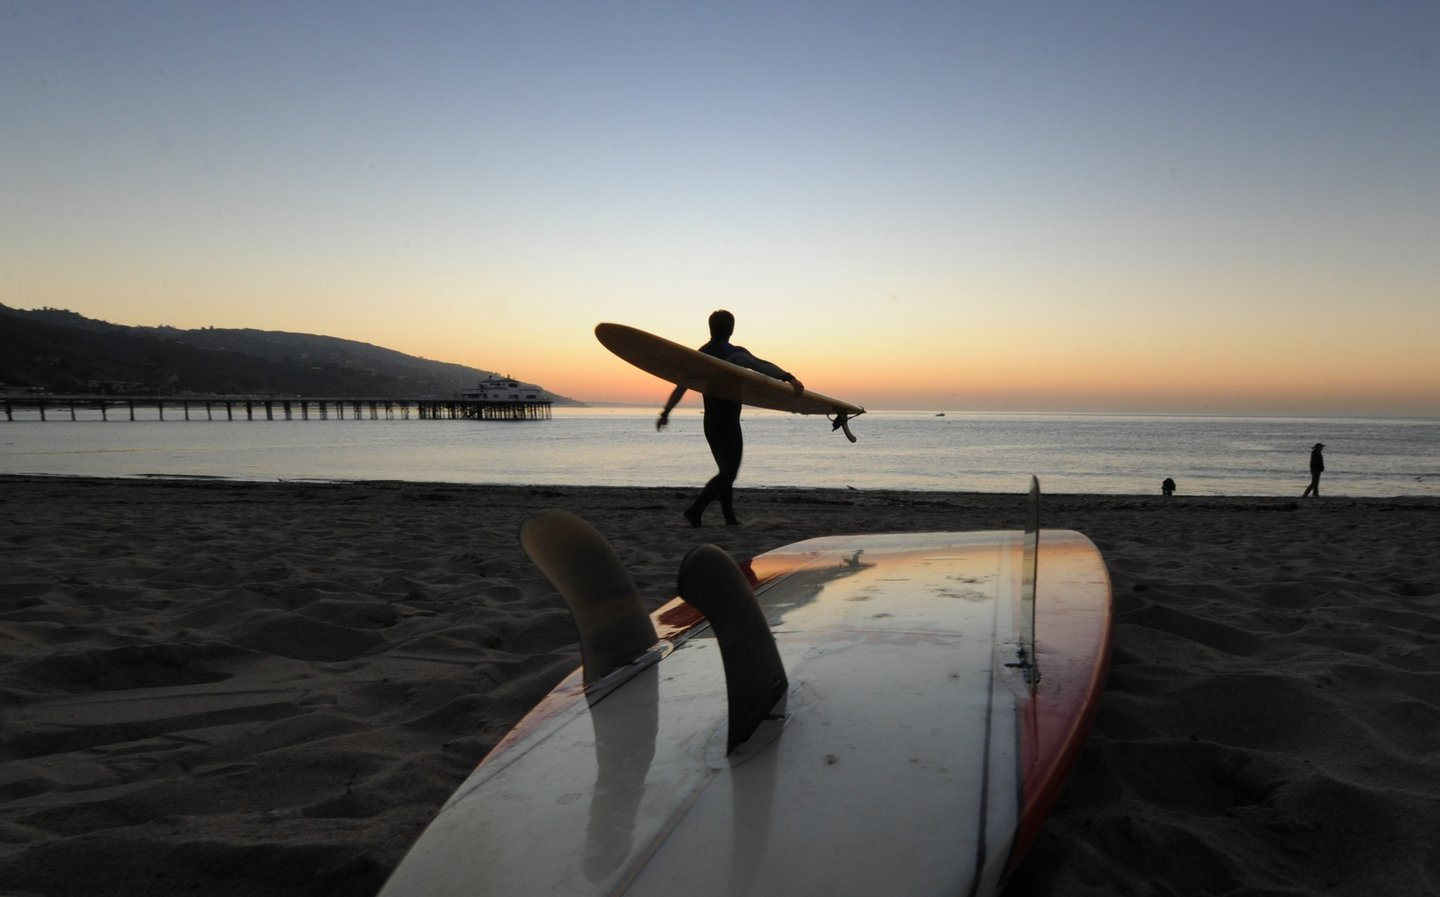 """A surfer enters the water before tribal elder Mati Waiya from the Chumash Nation conducts the dedication ceremony for the iconic Malibu Surfrider Beach to become the first """"World Surfing Reserve"""" (WSR), in Malibu on October 9, 2010. Malibu is California?s definitive pointbreak and one of the world?s first ?perfect waves?, but has struggled with water quality issues in recent years. The WSR program, inspired by UNESCO?s World Heritage Sites, helps the surfing community to identify and preserve it's surfing heritage, raise environmental awareness and issues at important surf breaks.              AFP PHOTO/Mark RALSTON (Photo credit should read MARK RALSTON/AFP/Getty Images)"""